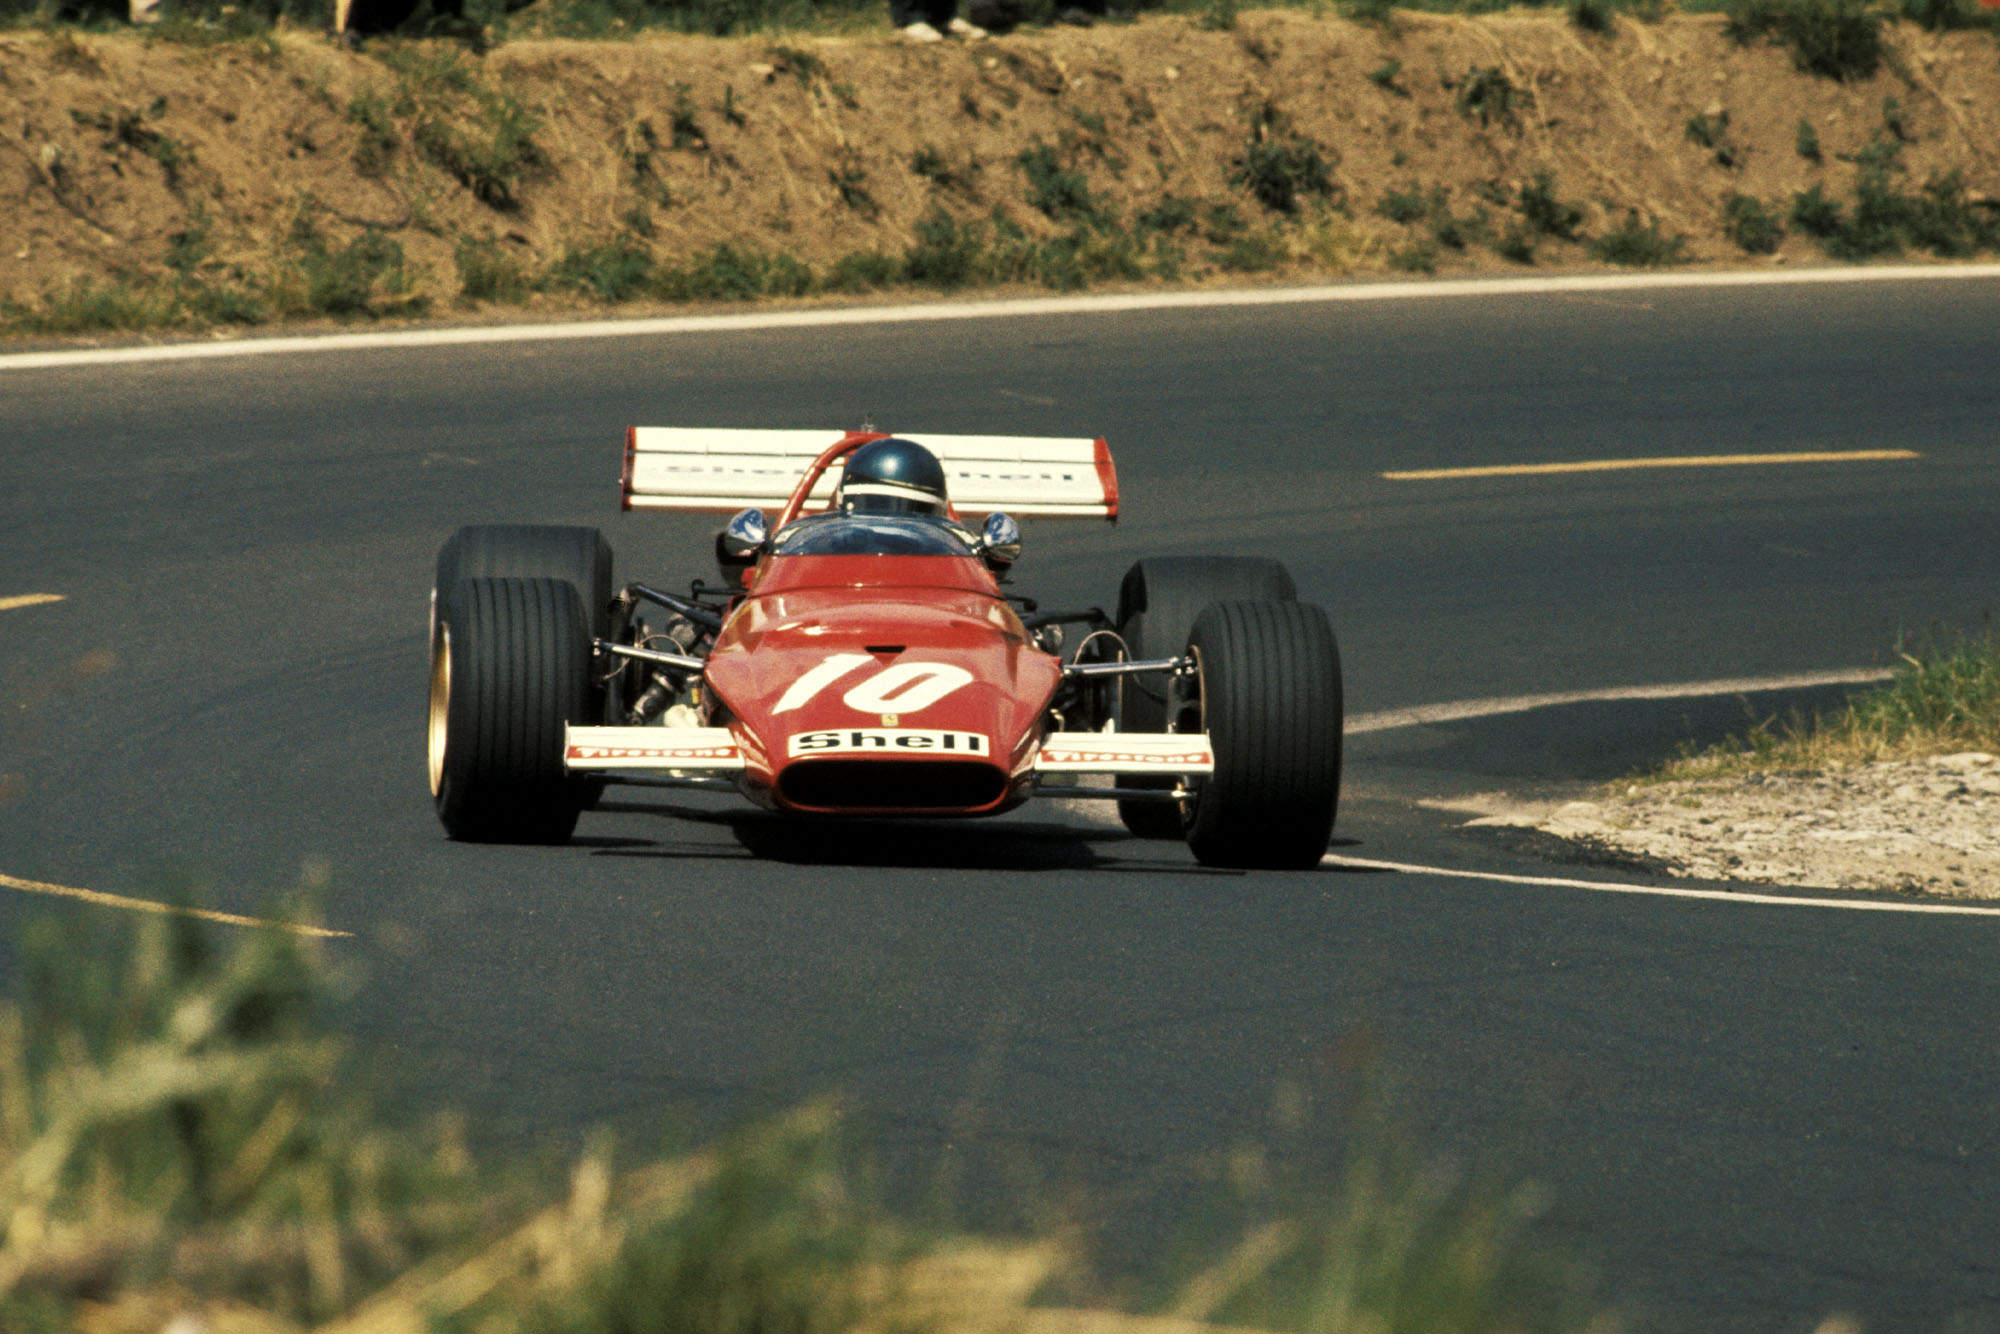 Jacky Ickx driving for Ferrari at the 1970 French Grand Prix